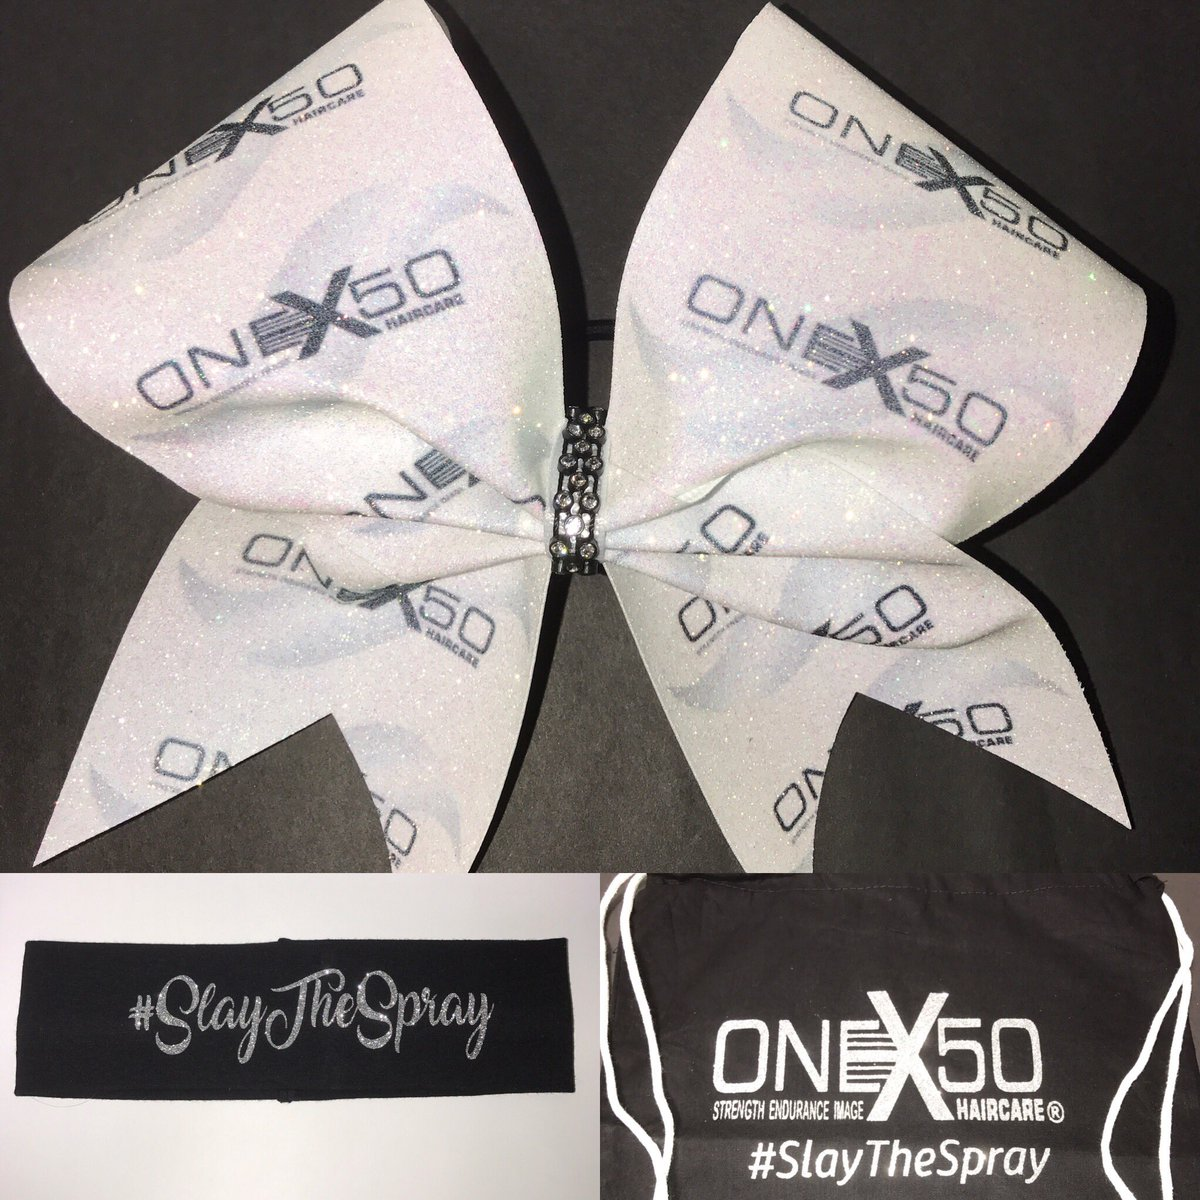 New additions! Check out Instagram on how to order! FLYING OFF THE SHELVES!!! #SlayTheSpray #ONEx50 #OHmyBOW #hair #cheer #dance<br>http://pic.twitter.com/NybBVrD8si